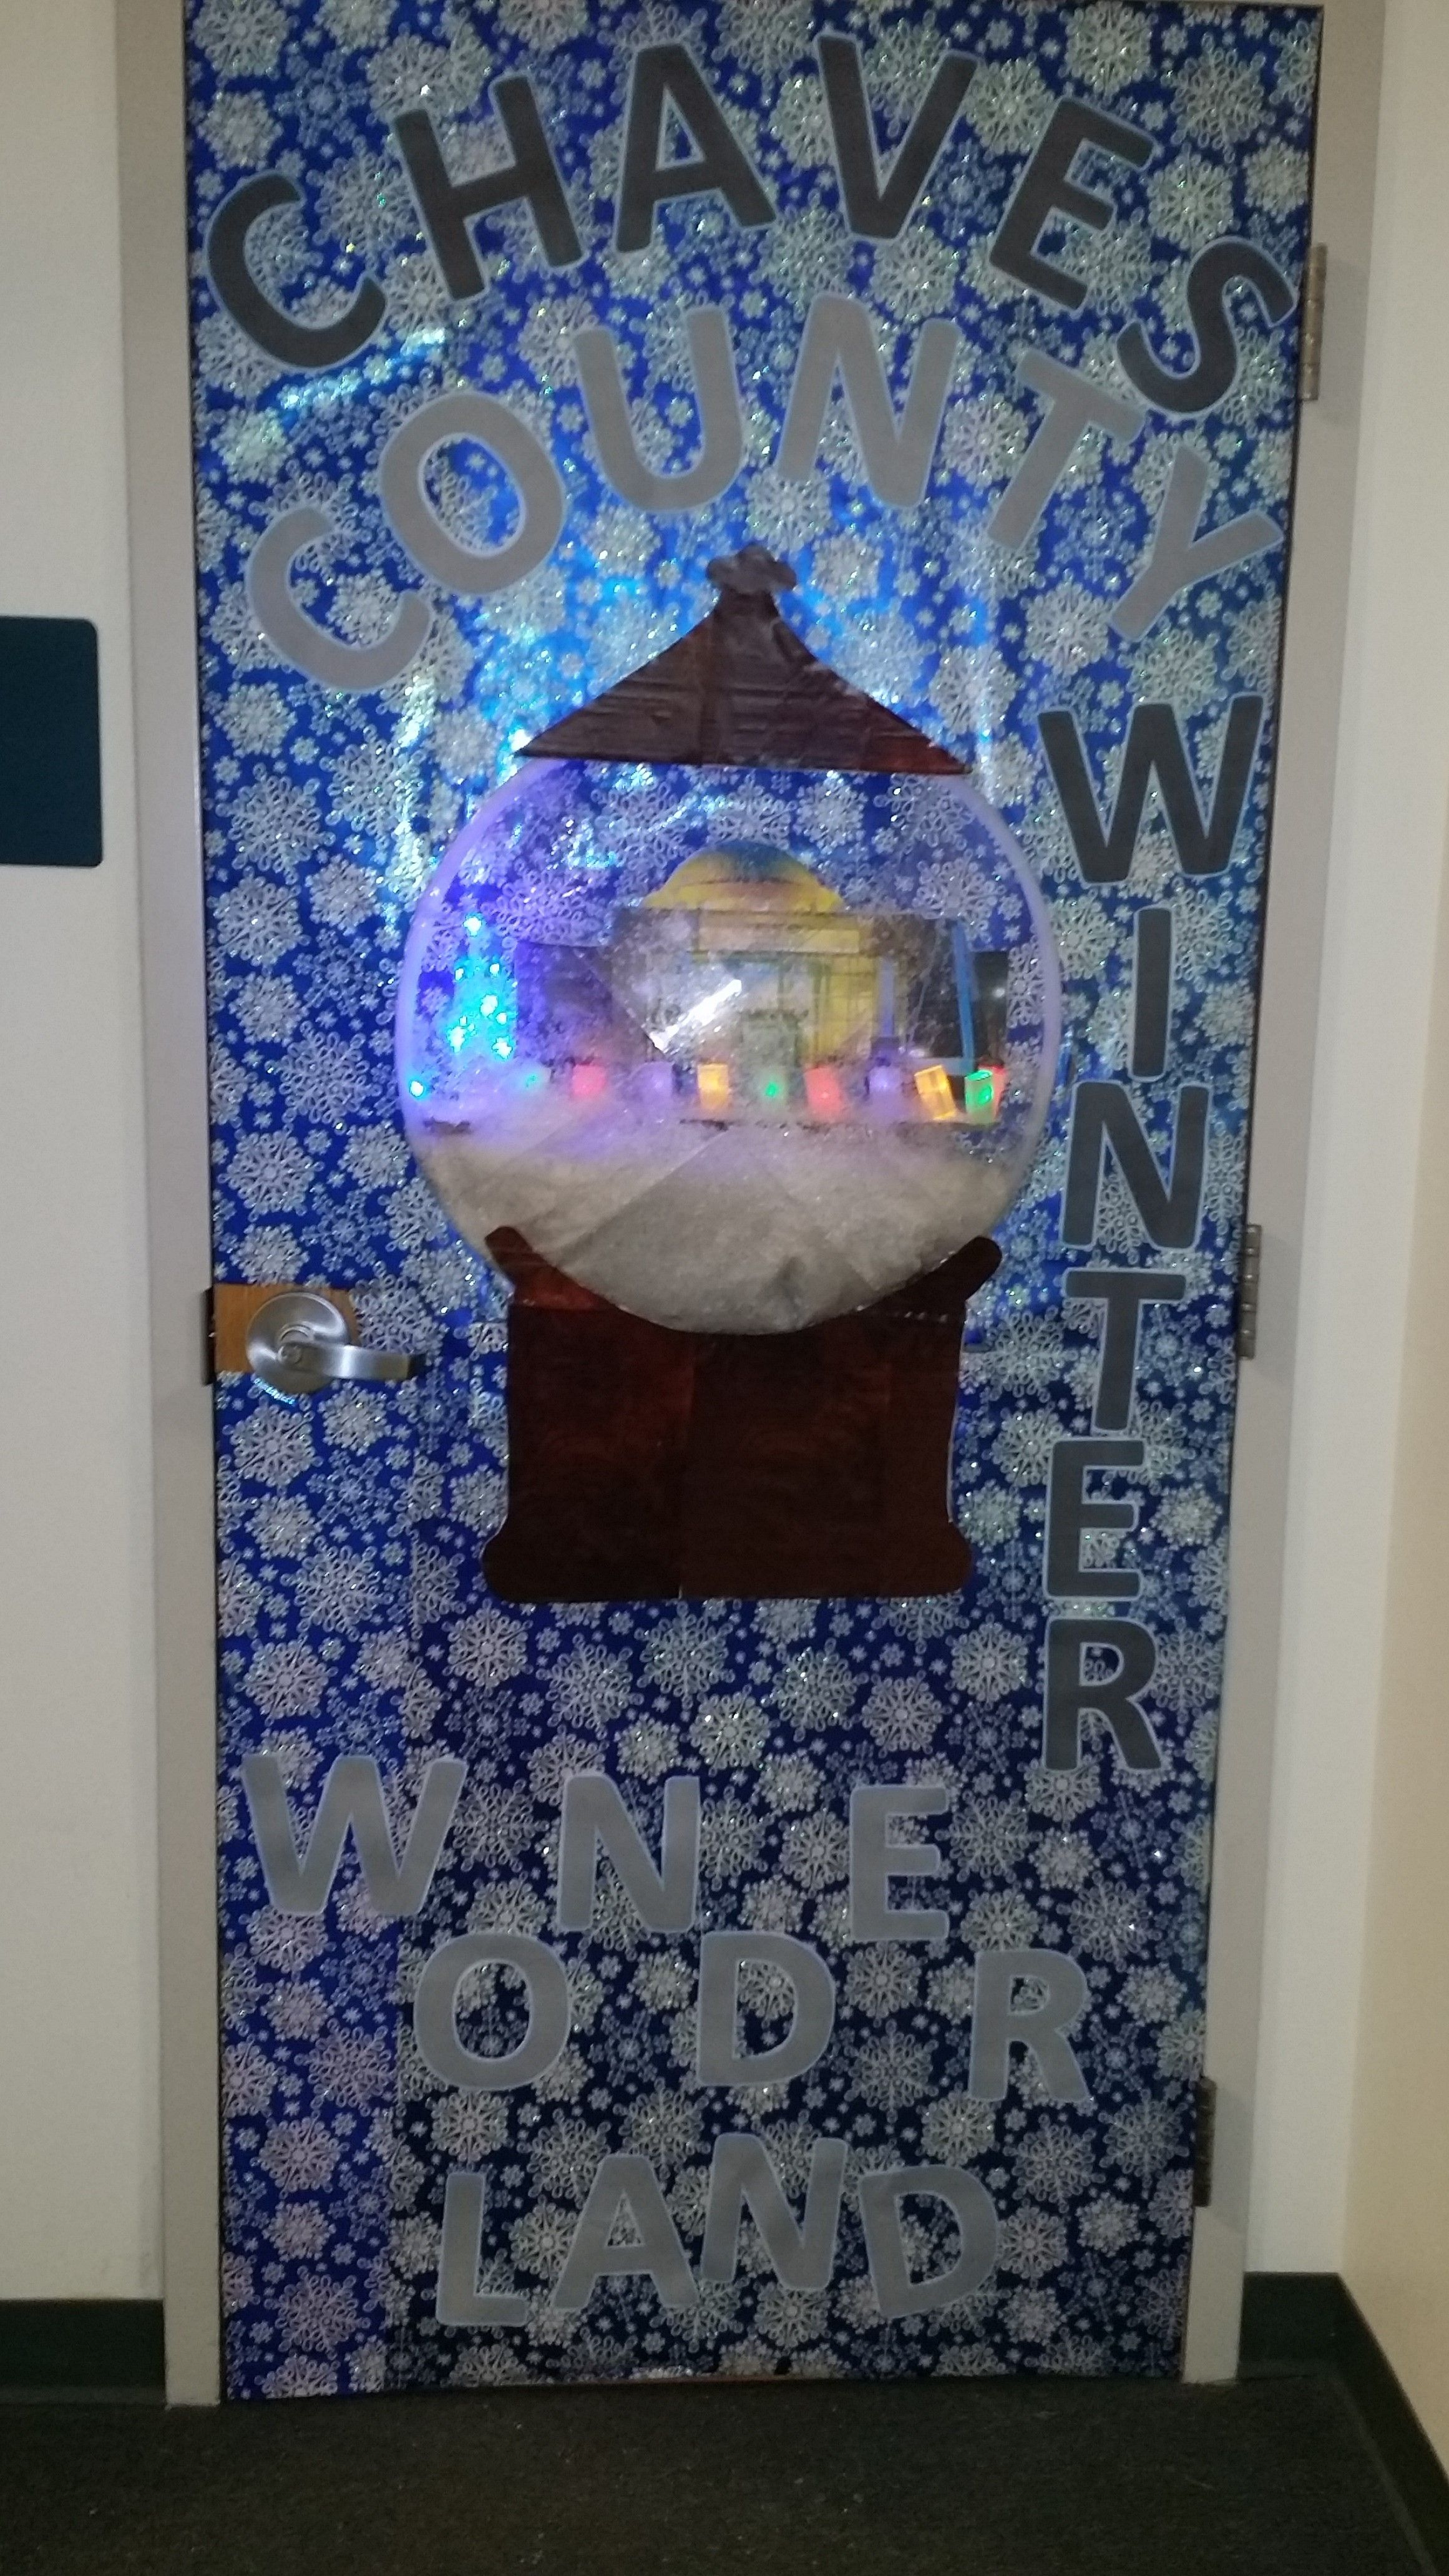 2014 Chaves County Financeihc Dept Door Decoration Entry Theme Was